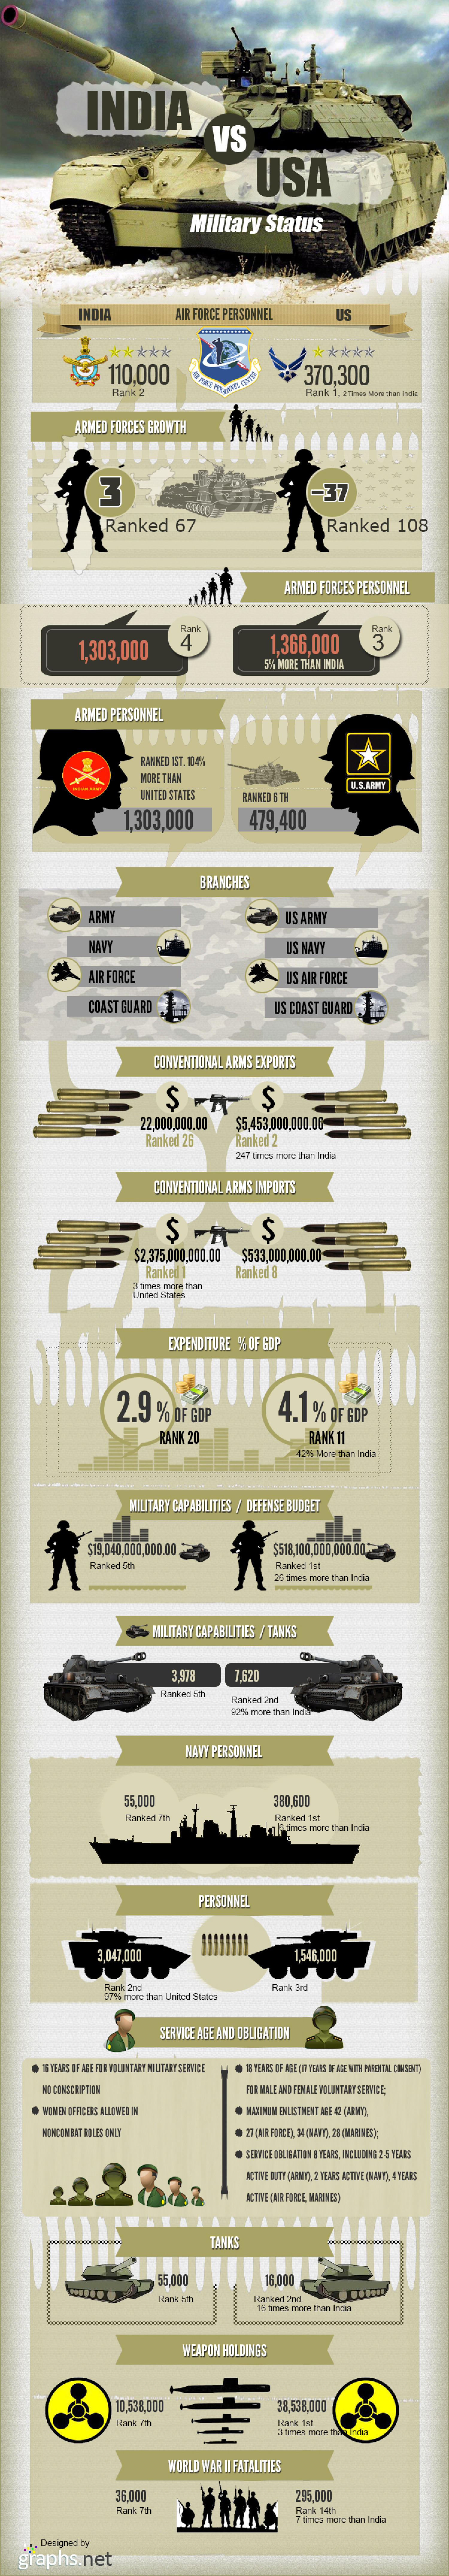 India vs USA military status  Infographic